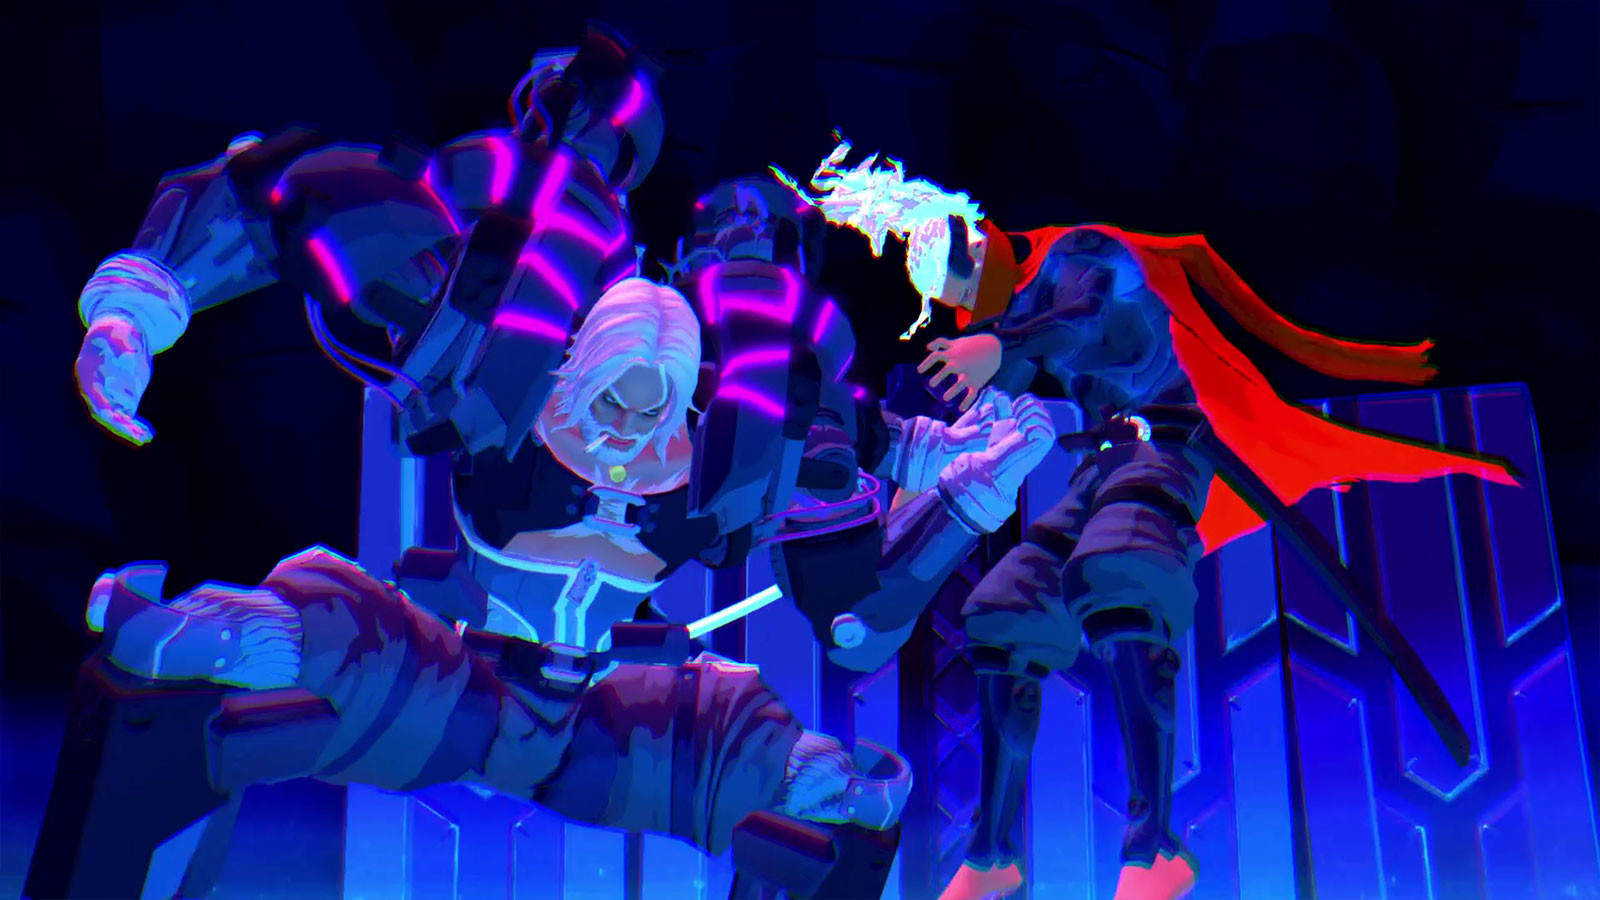 Furi - One More Fight [Steam CD Key] for PC - Buy now